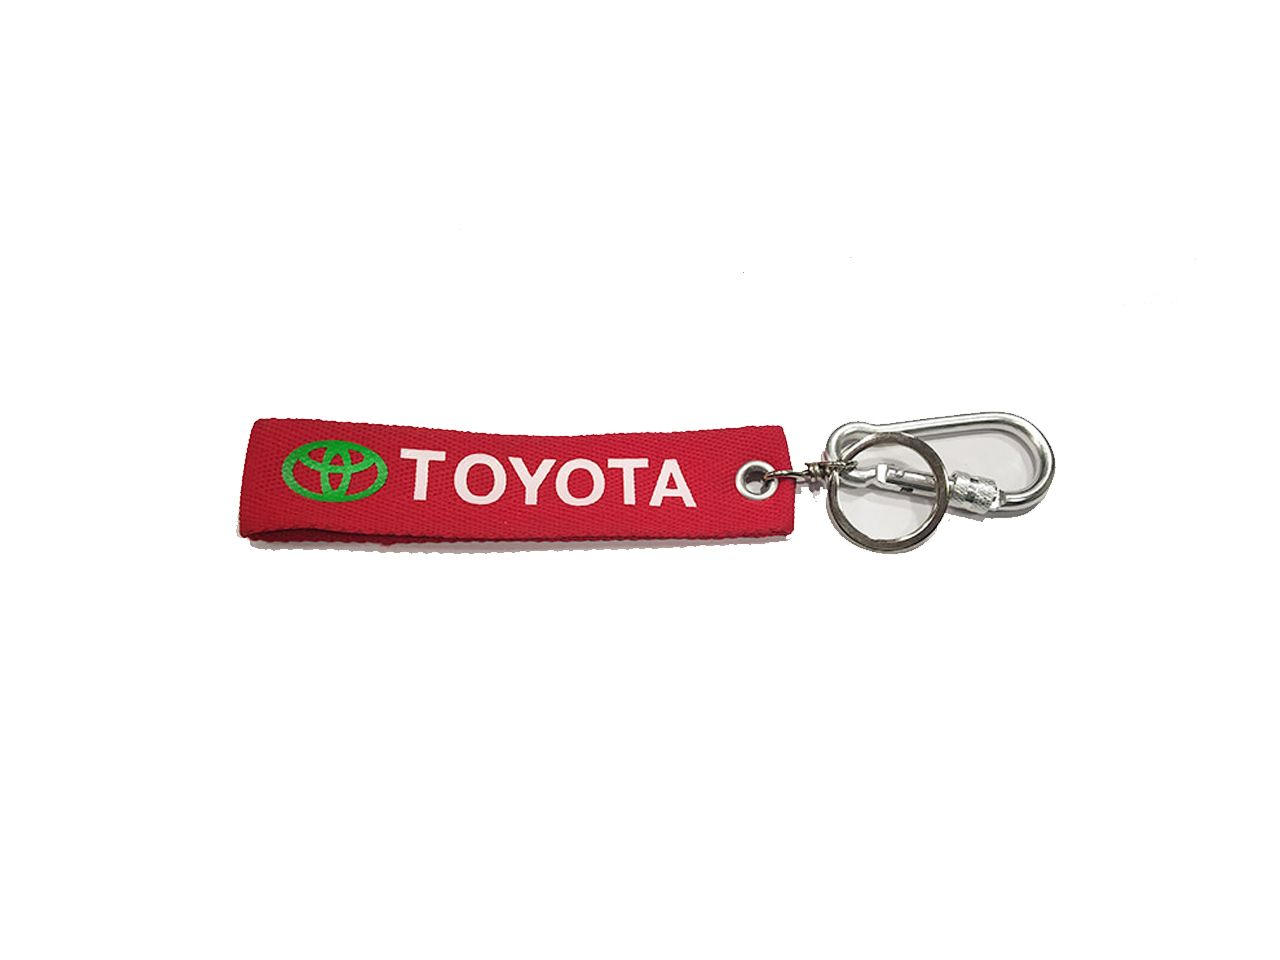 Toyota Red Fabric Keychain